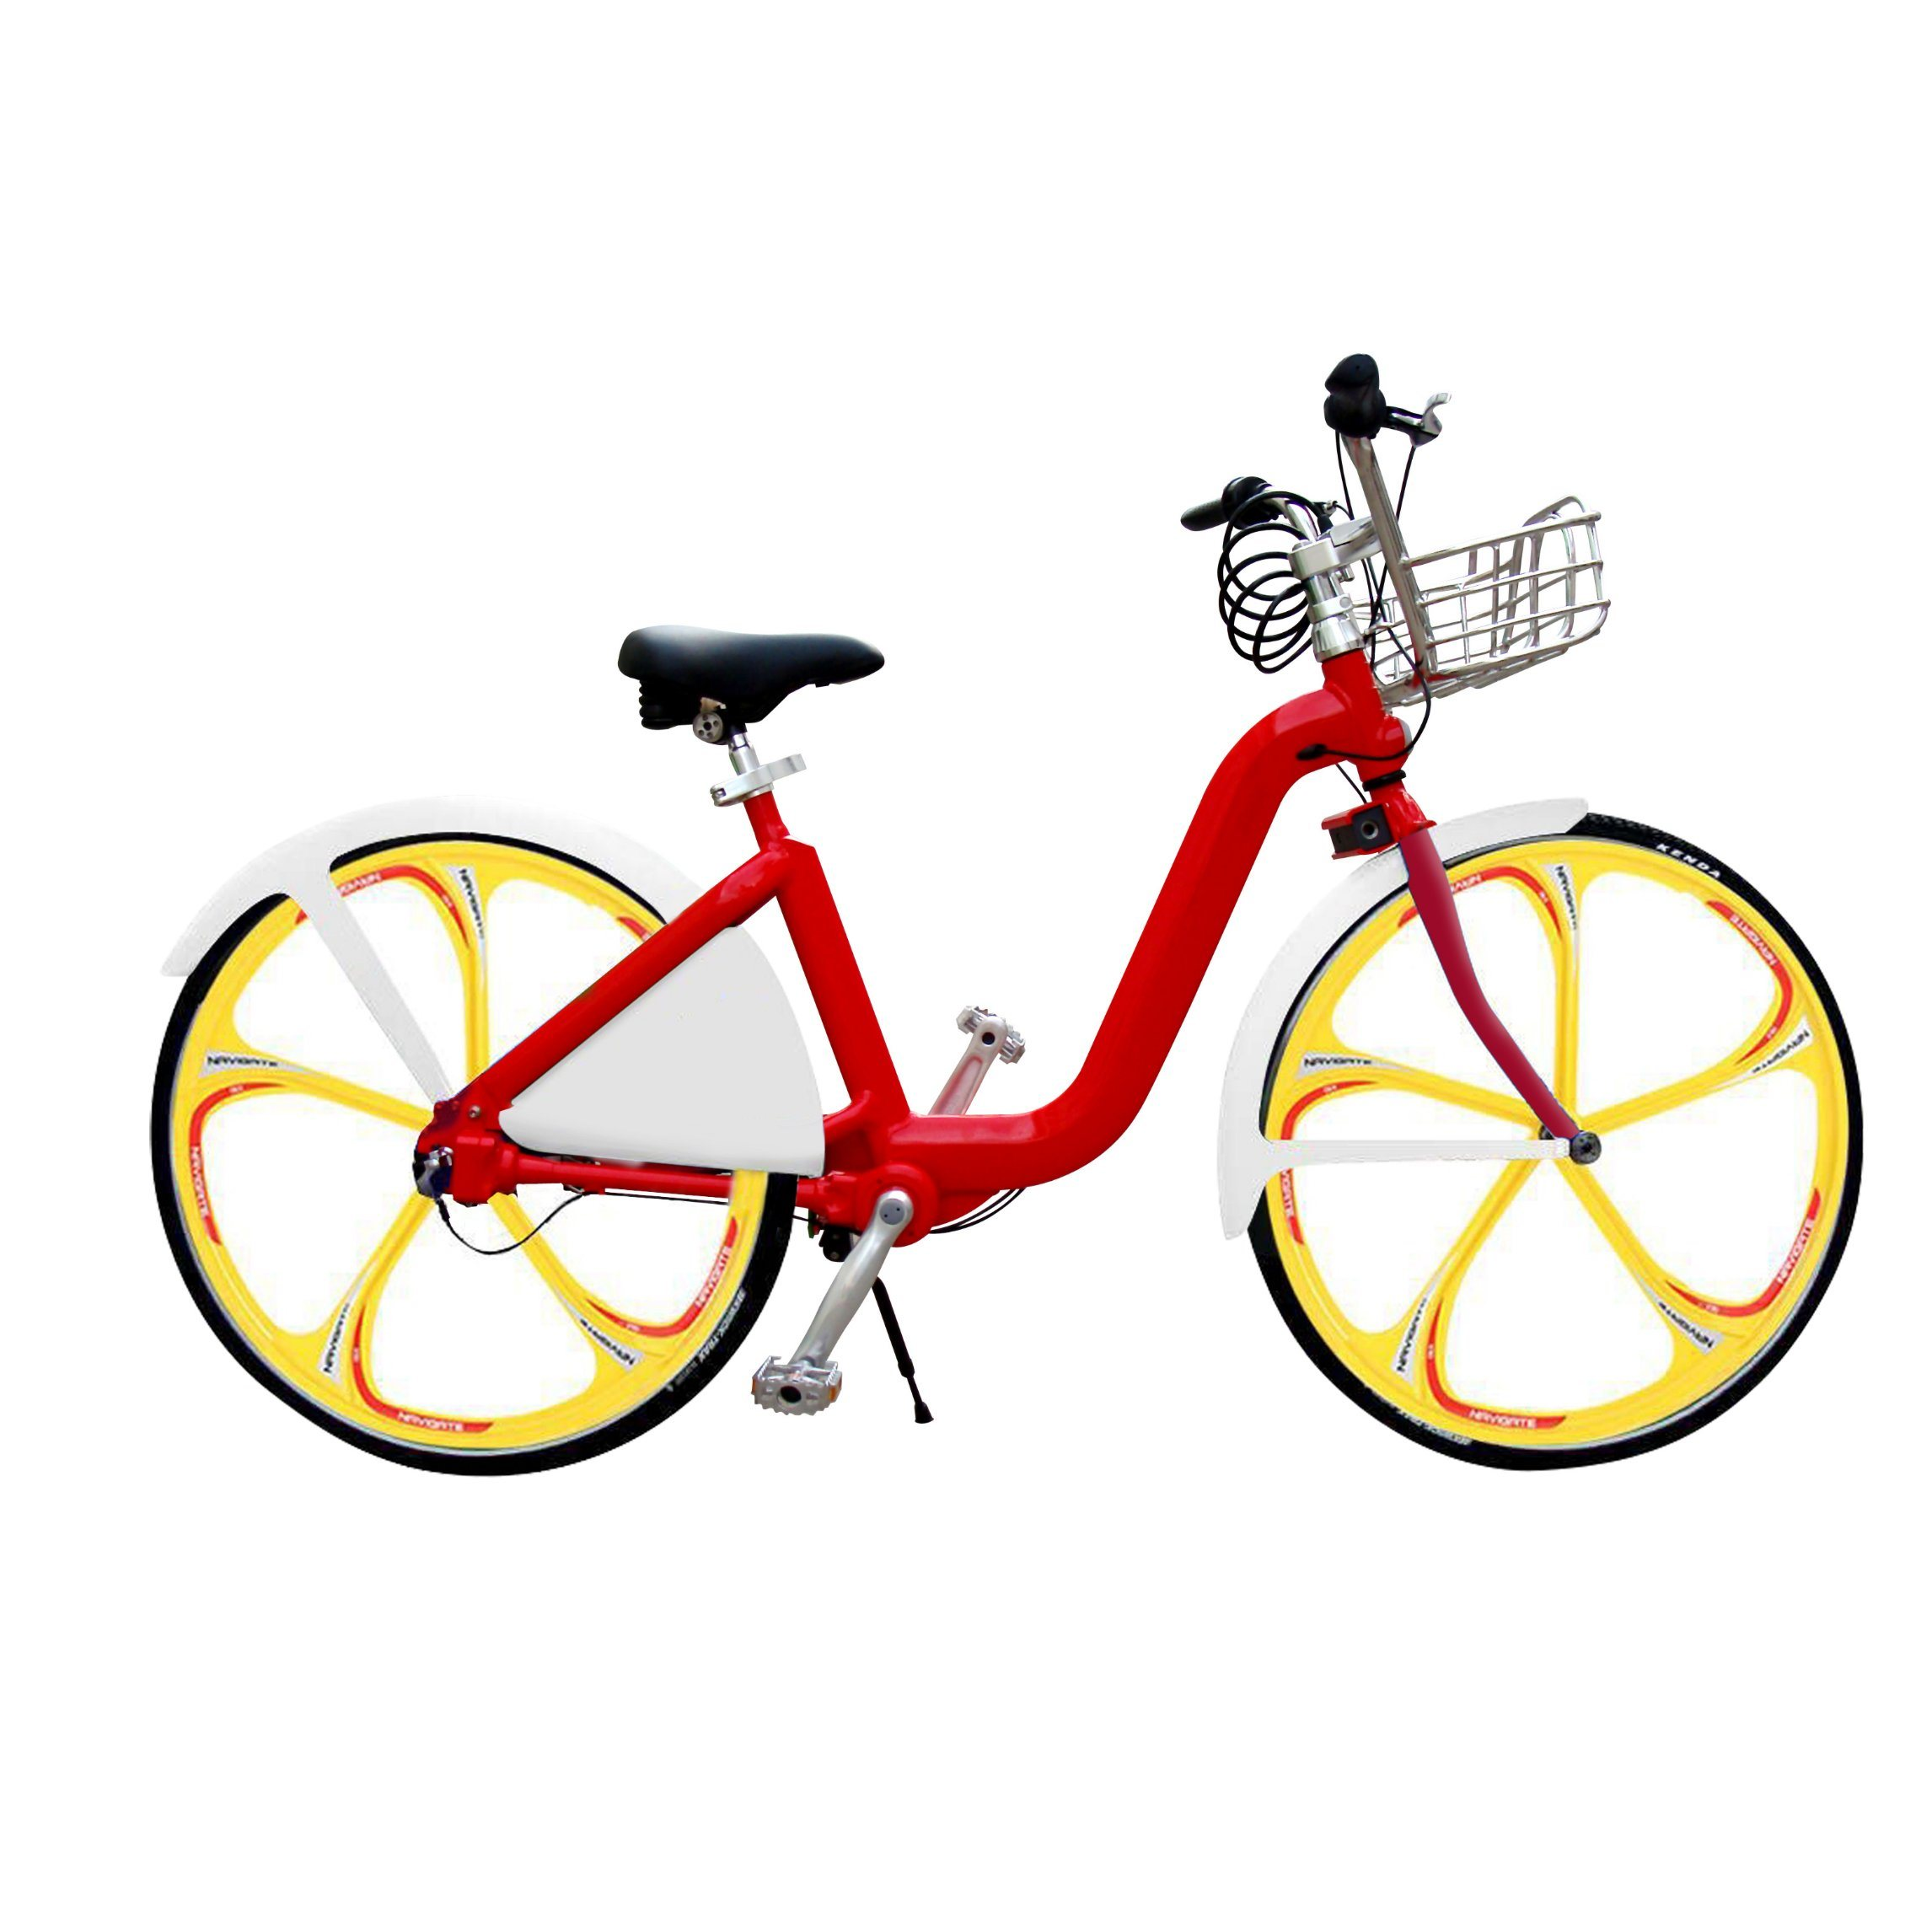 City Rental Bicycle with Aluminum Alloy Frame Self Rent Urban Shaft Drive Bike Without Chain